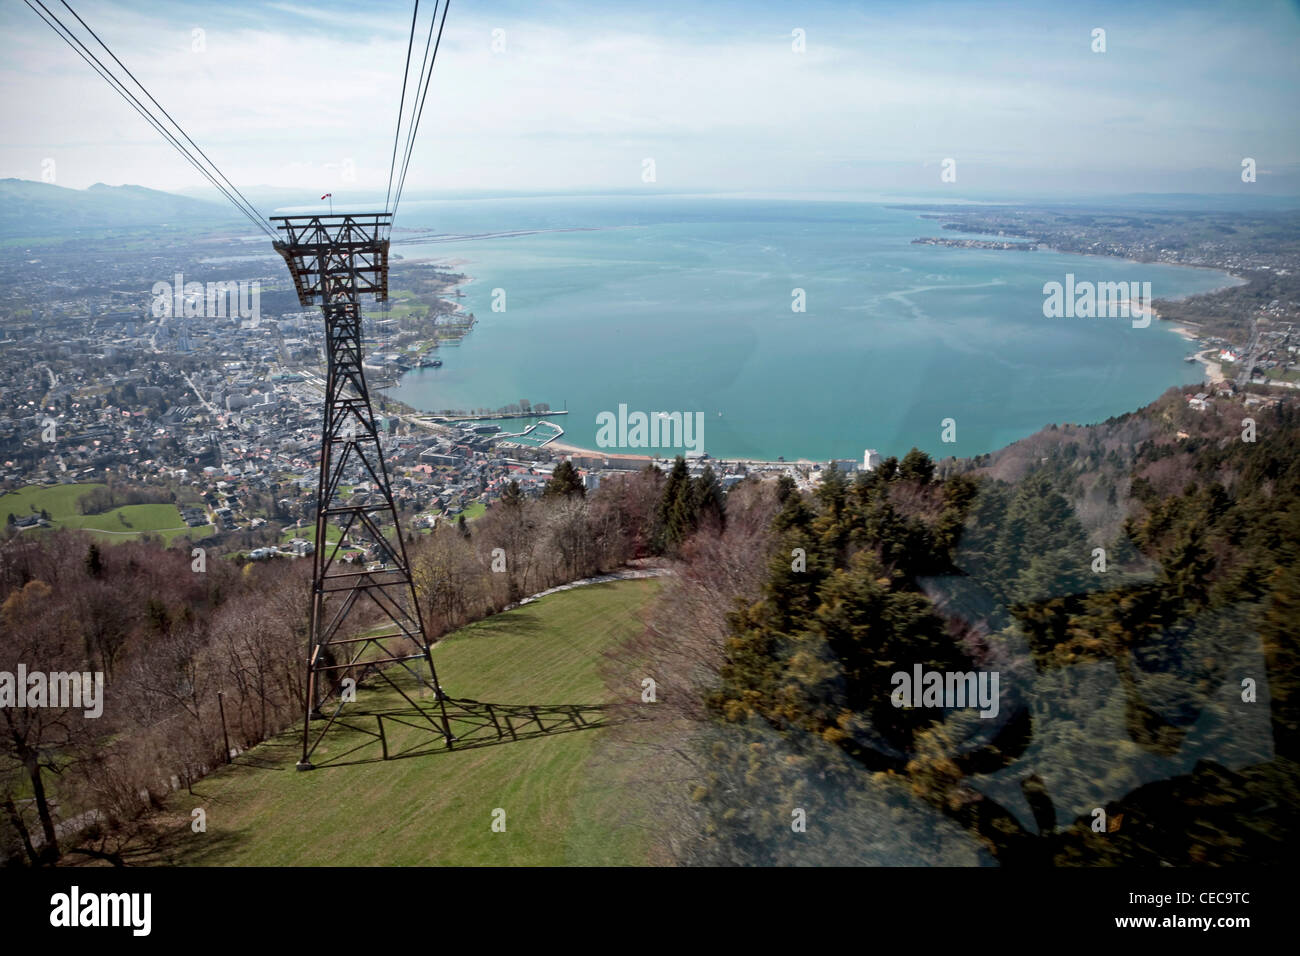 View from the Pfaender near Bregenz in Austria on the Lake Constance in early spring - Stock Image